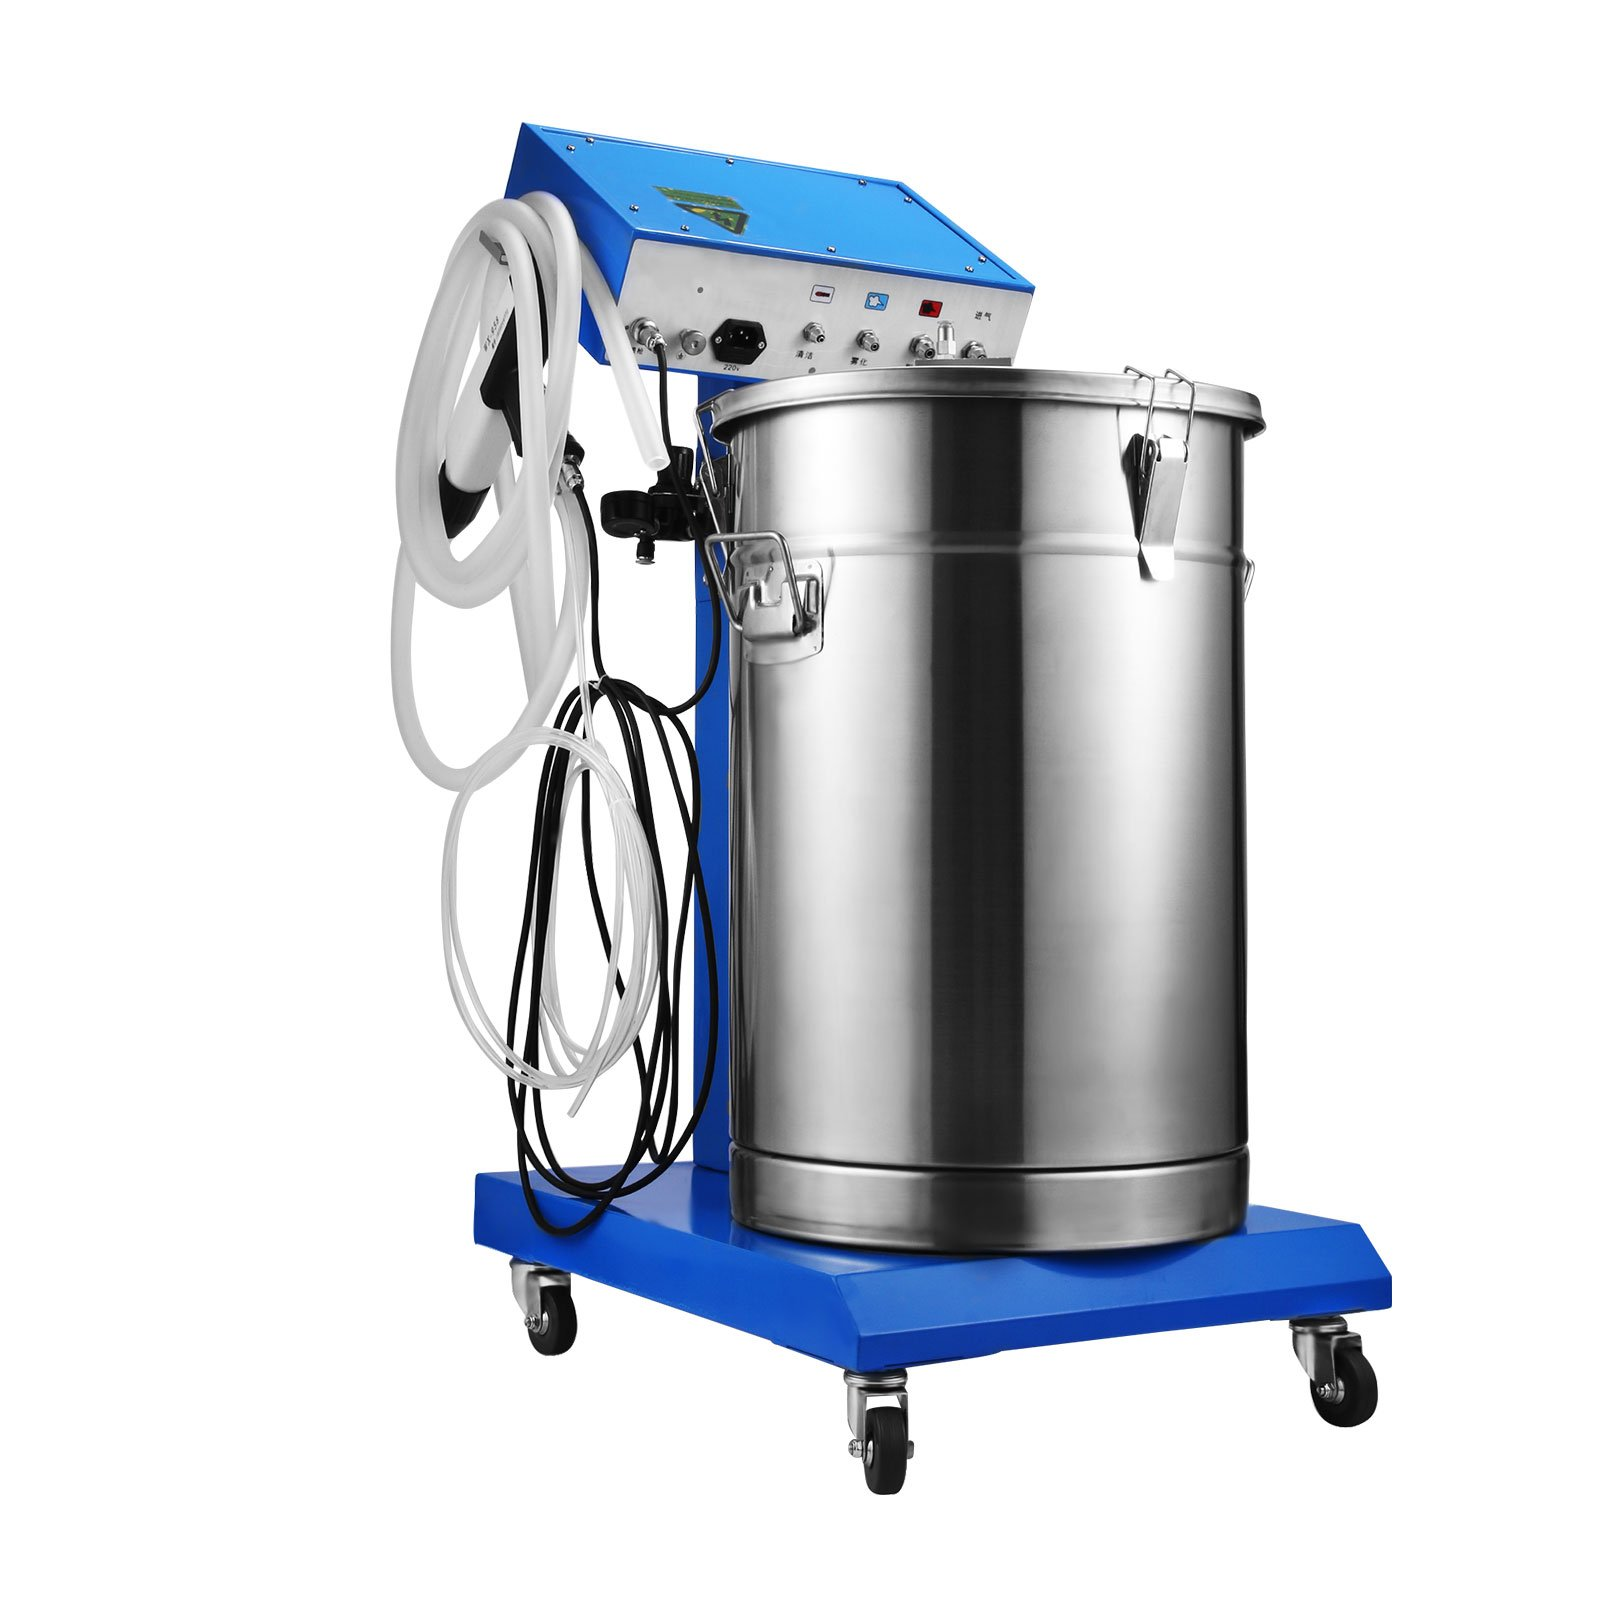 OrangeA Powder Coating Machine Hopper Volume 45L 50W Powder Coating Gun Paint 450g/min with 4m Cable Powder Coating Kit in WX-958 (45L 50W)